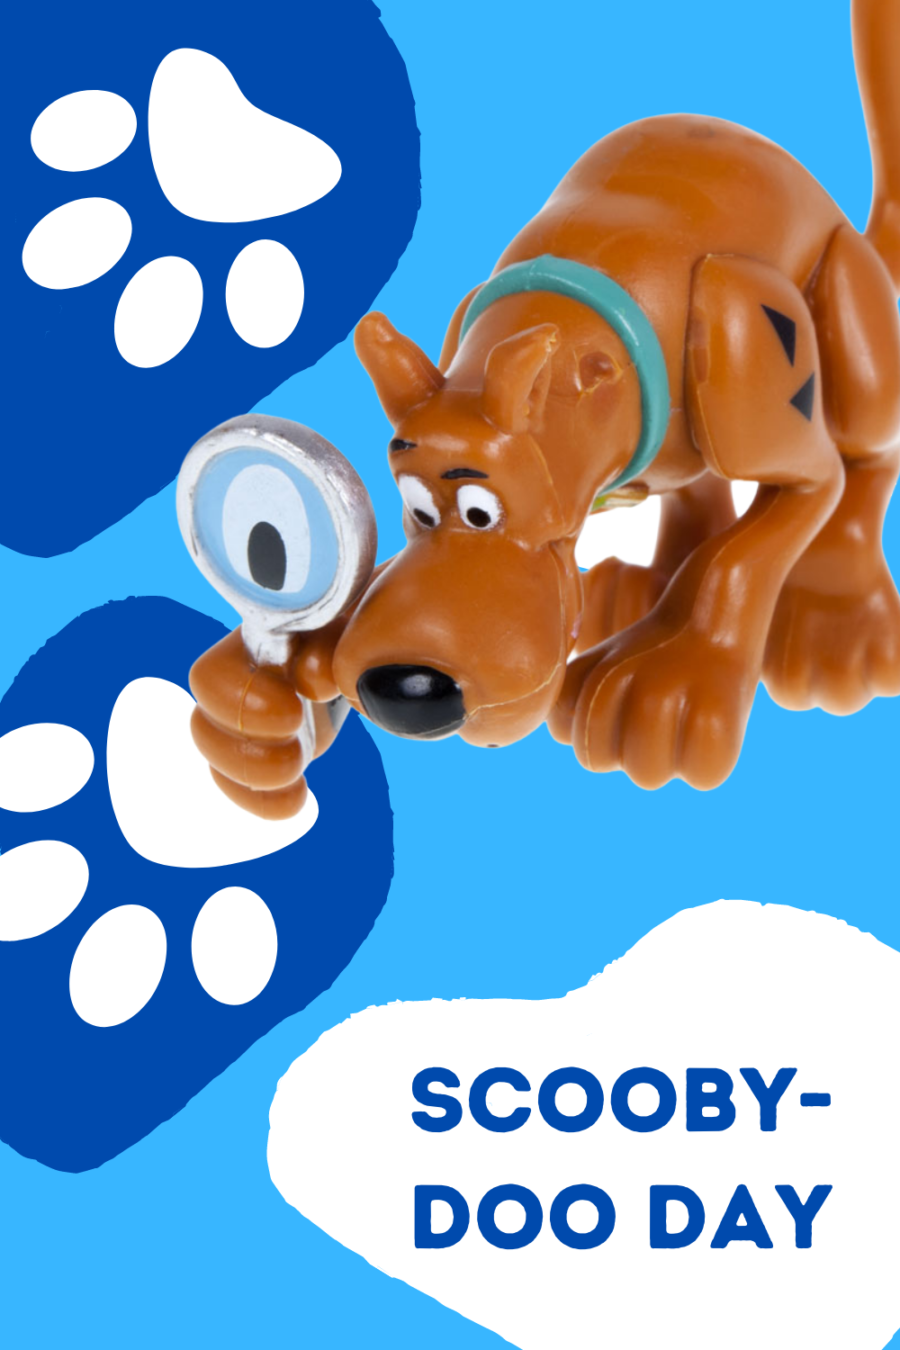 Scooby Doo Day is September 13